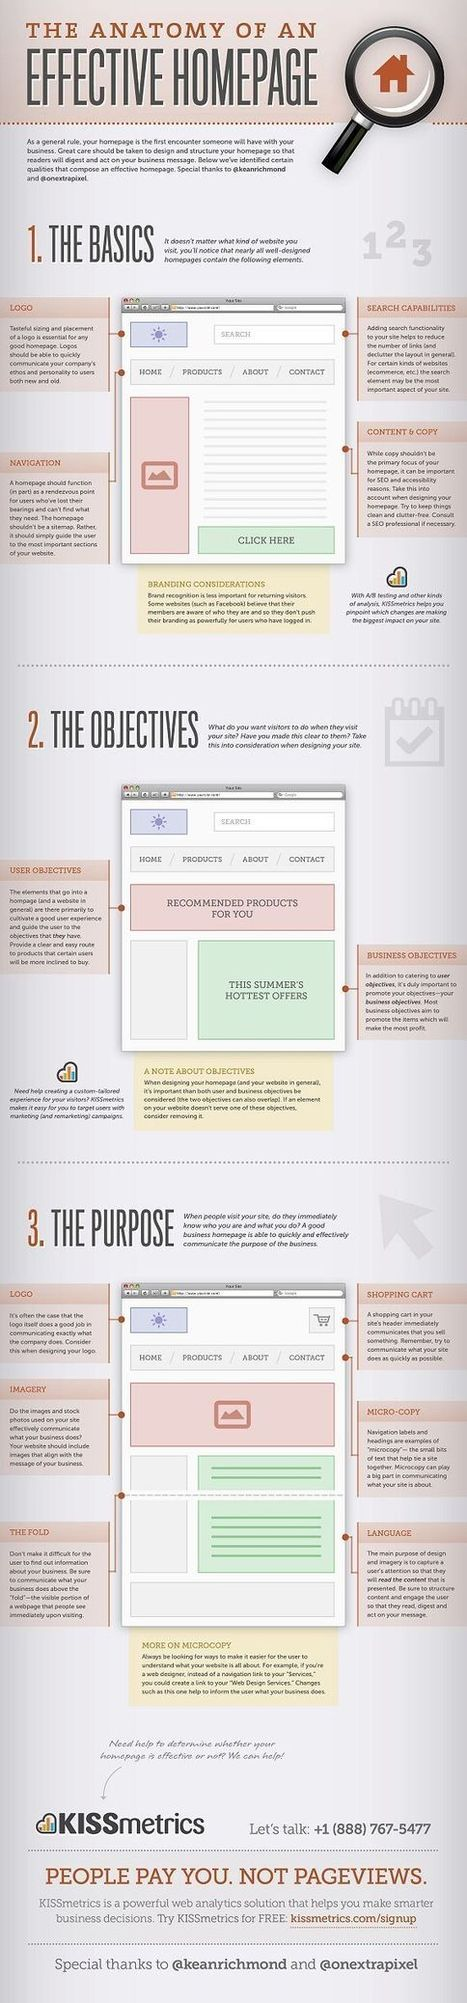 The Anatomy of An Effective Homepage {Infographic} - Best Infographics | Digital-News on Scoop.it today | Scoop.it